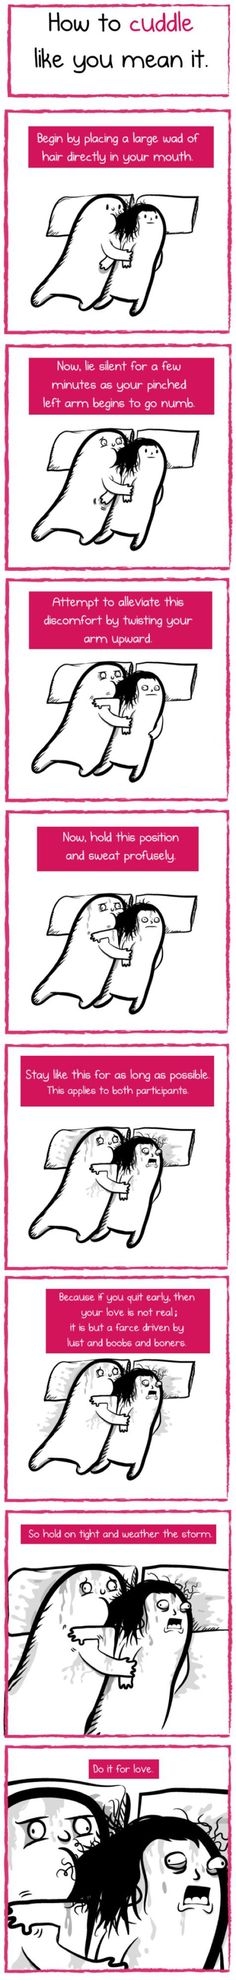 How to cuddle like you mean it.